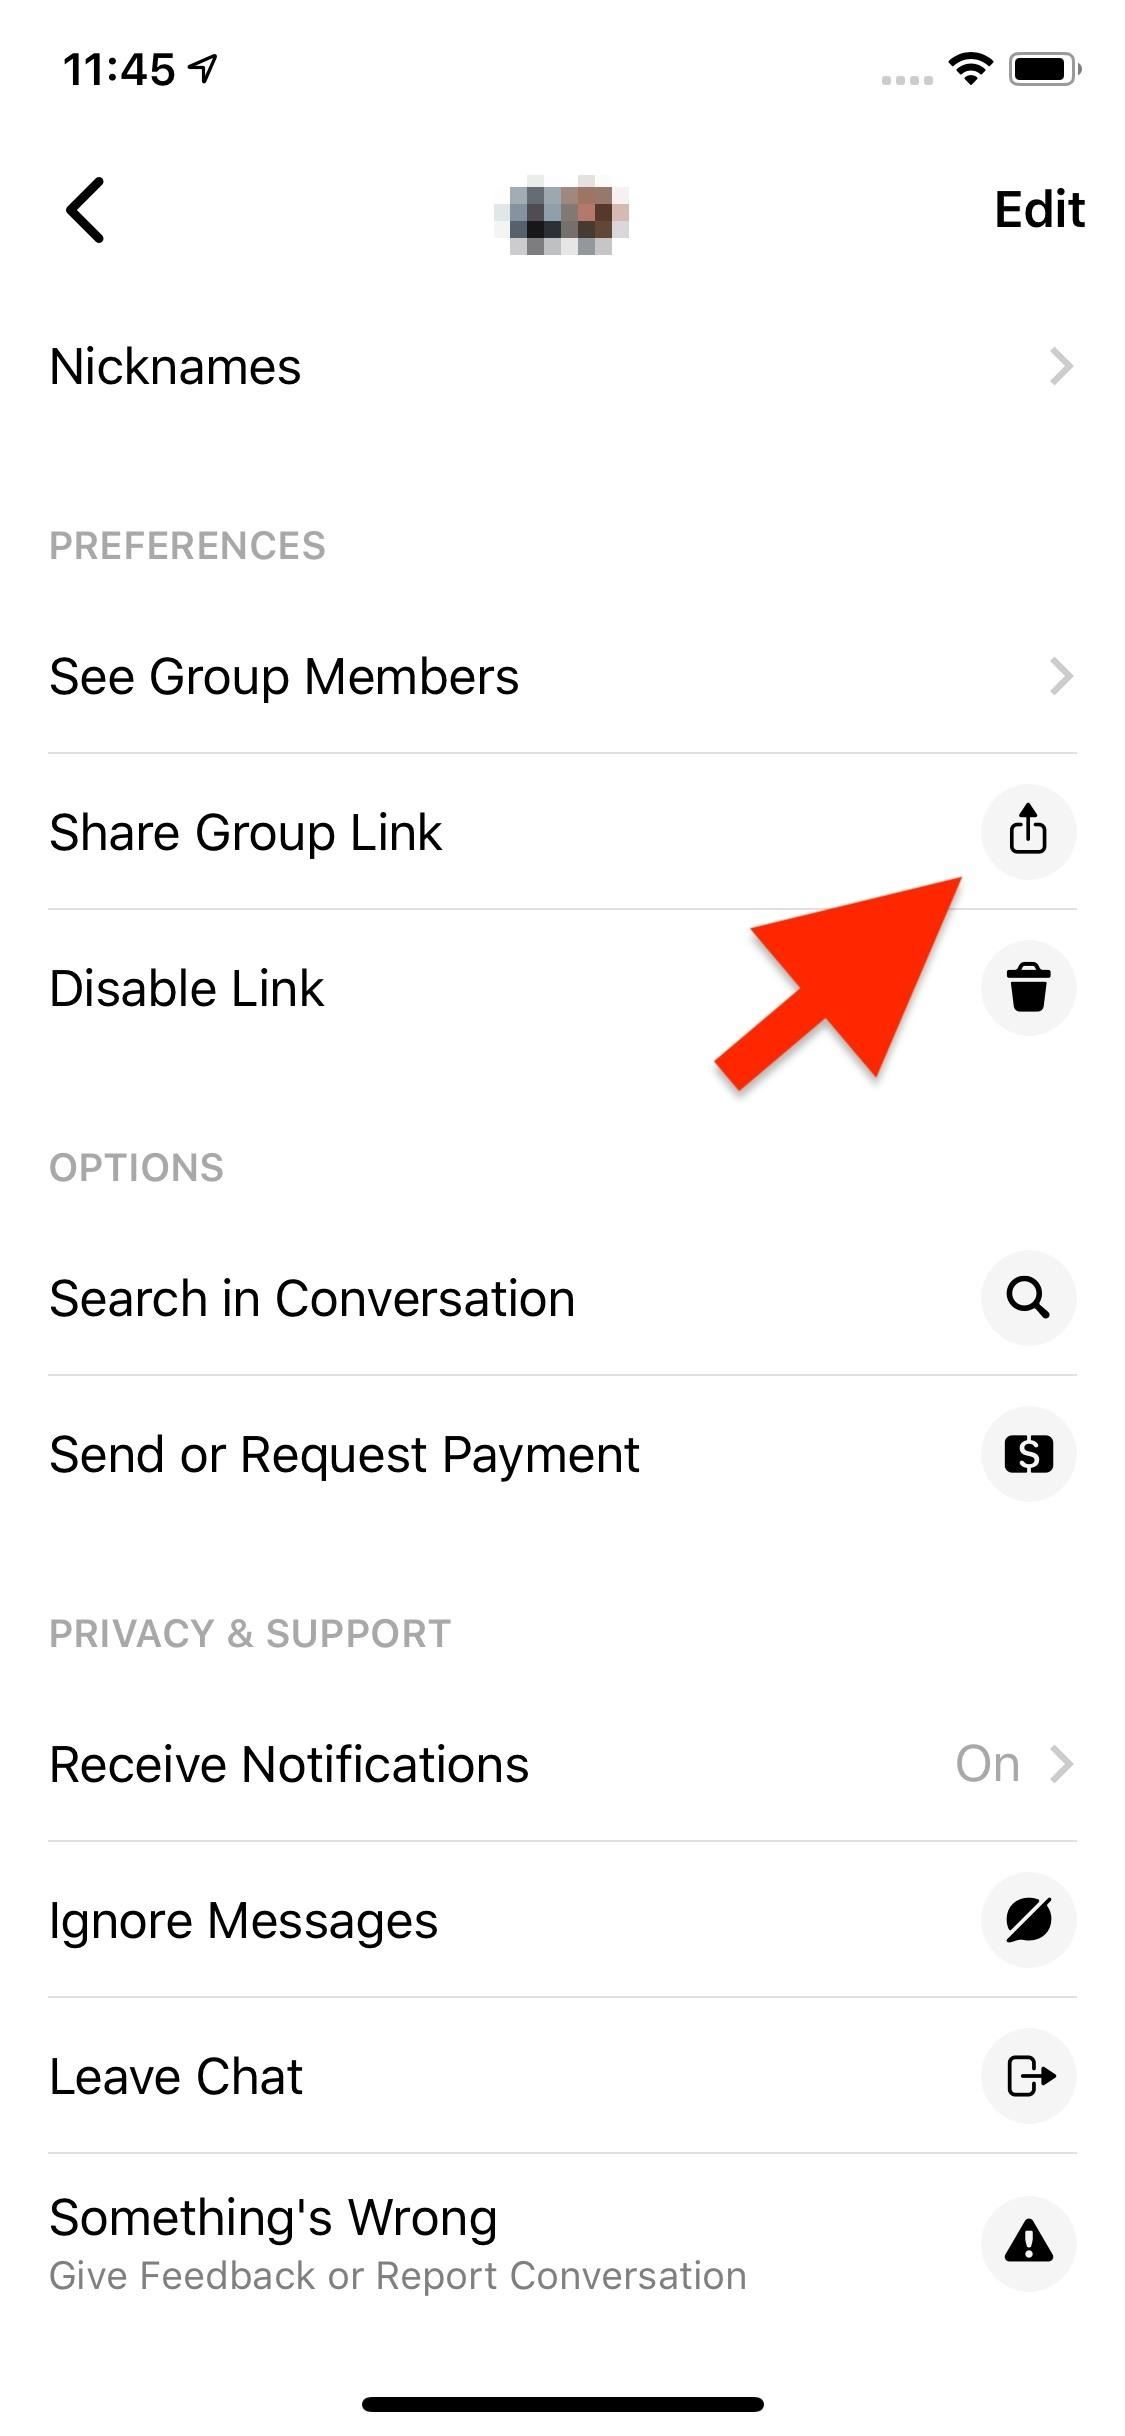 How to Invite People to Messenger Group Chats with a Link So They Can Join Right Away or Wait on Approval